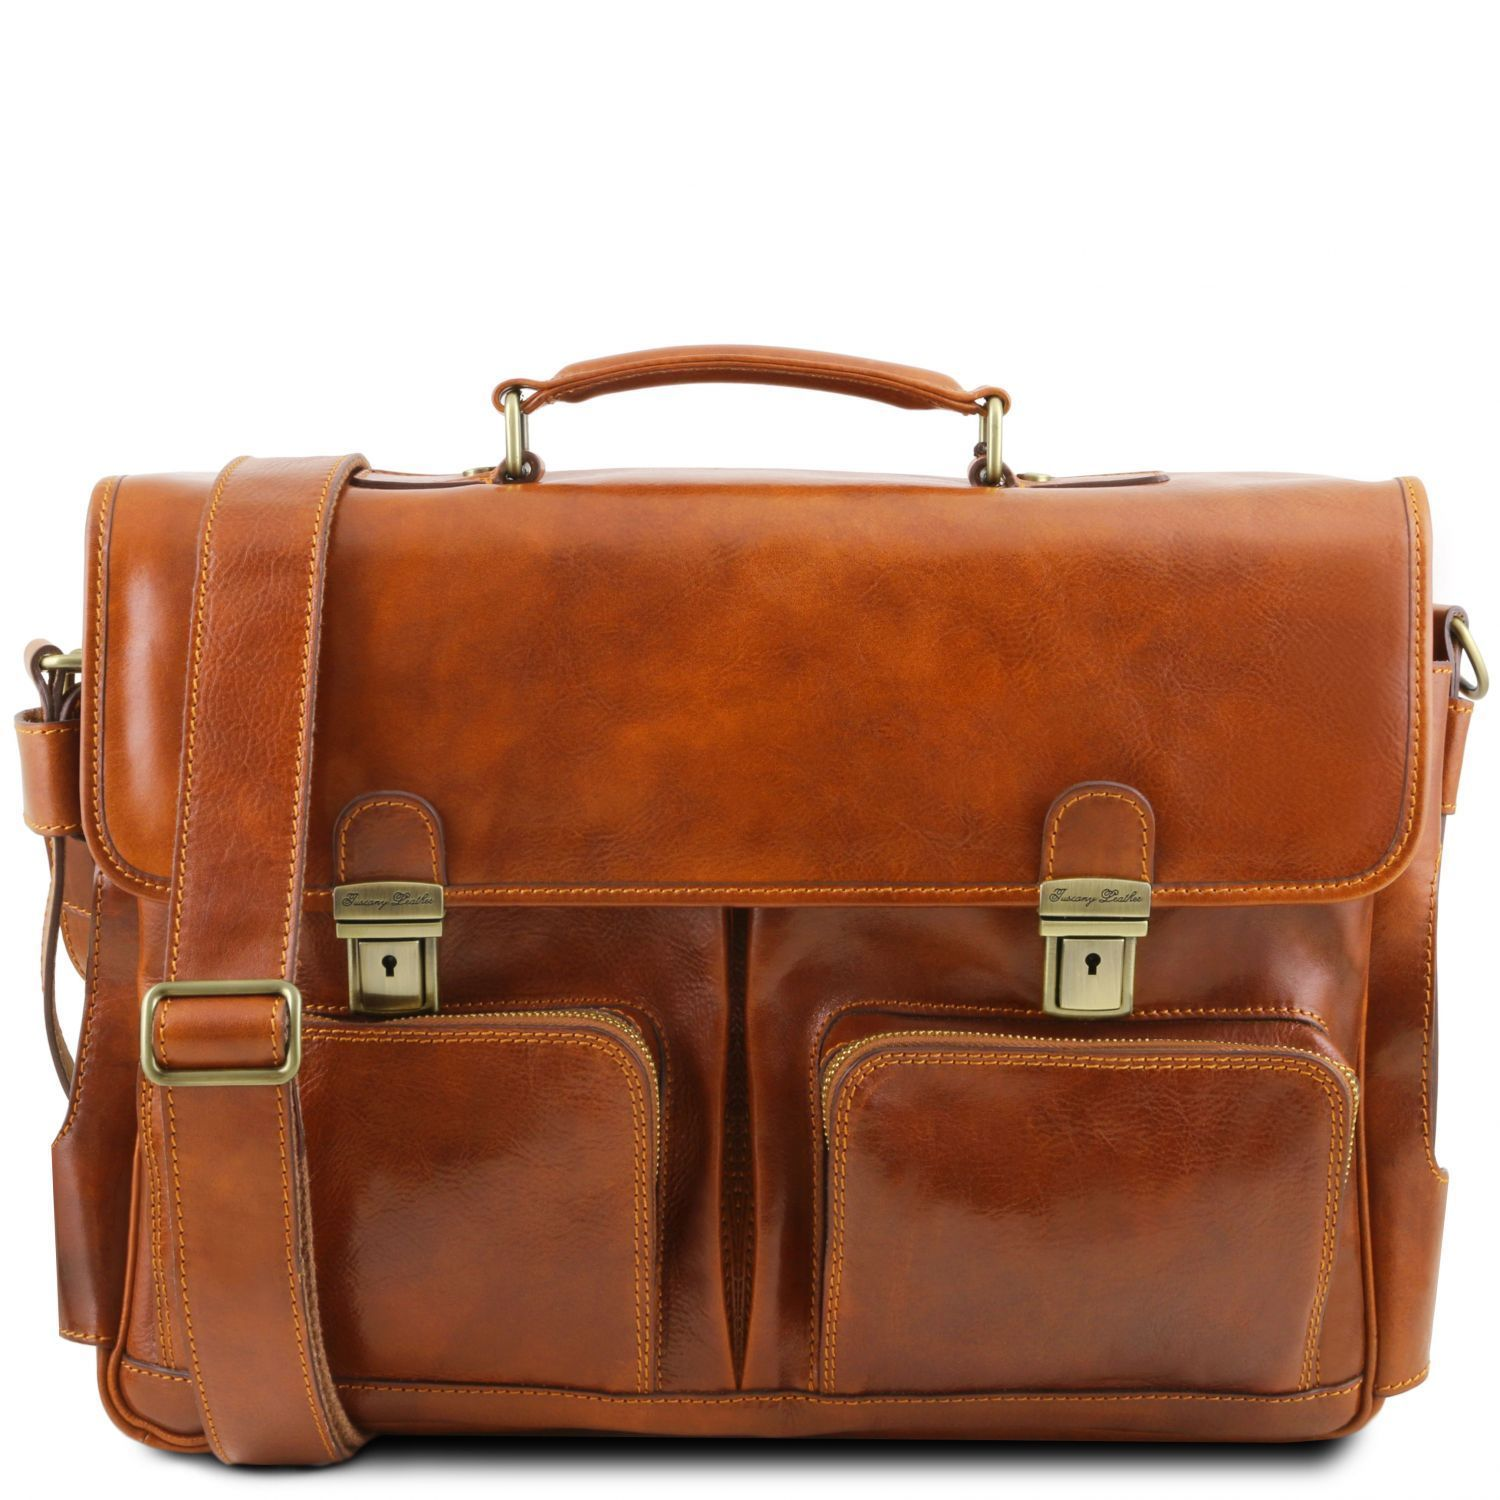 Tuscany Leather 'Ventimiglia' Leather Laptop Briefcase (Smart Module) Briefcase Tuscany Leather Honey